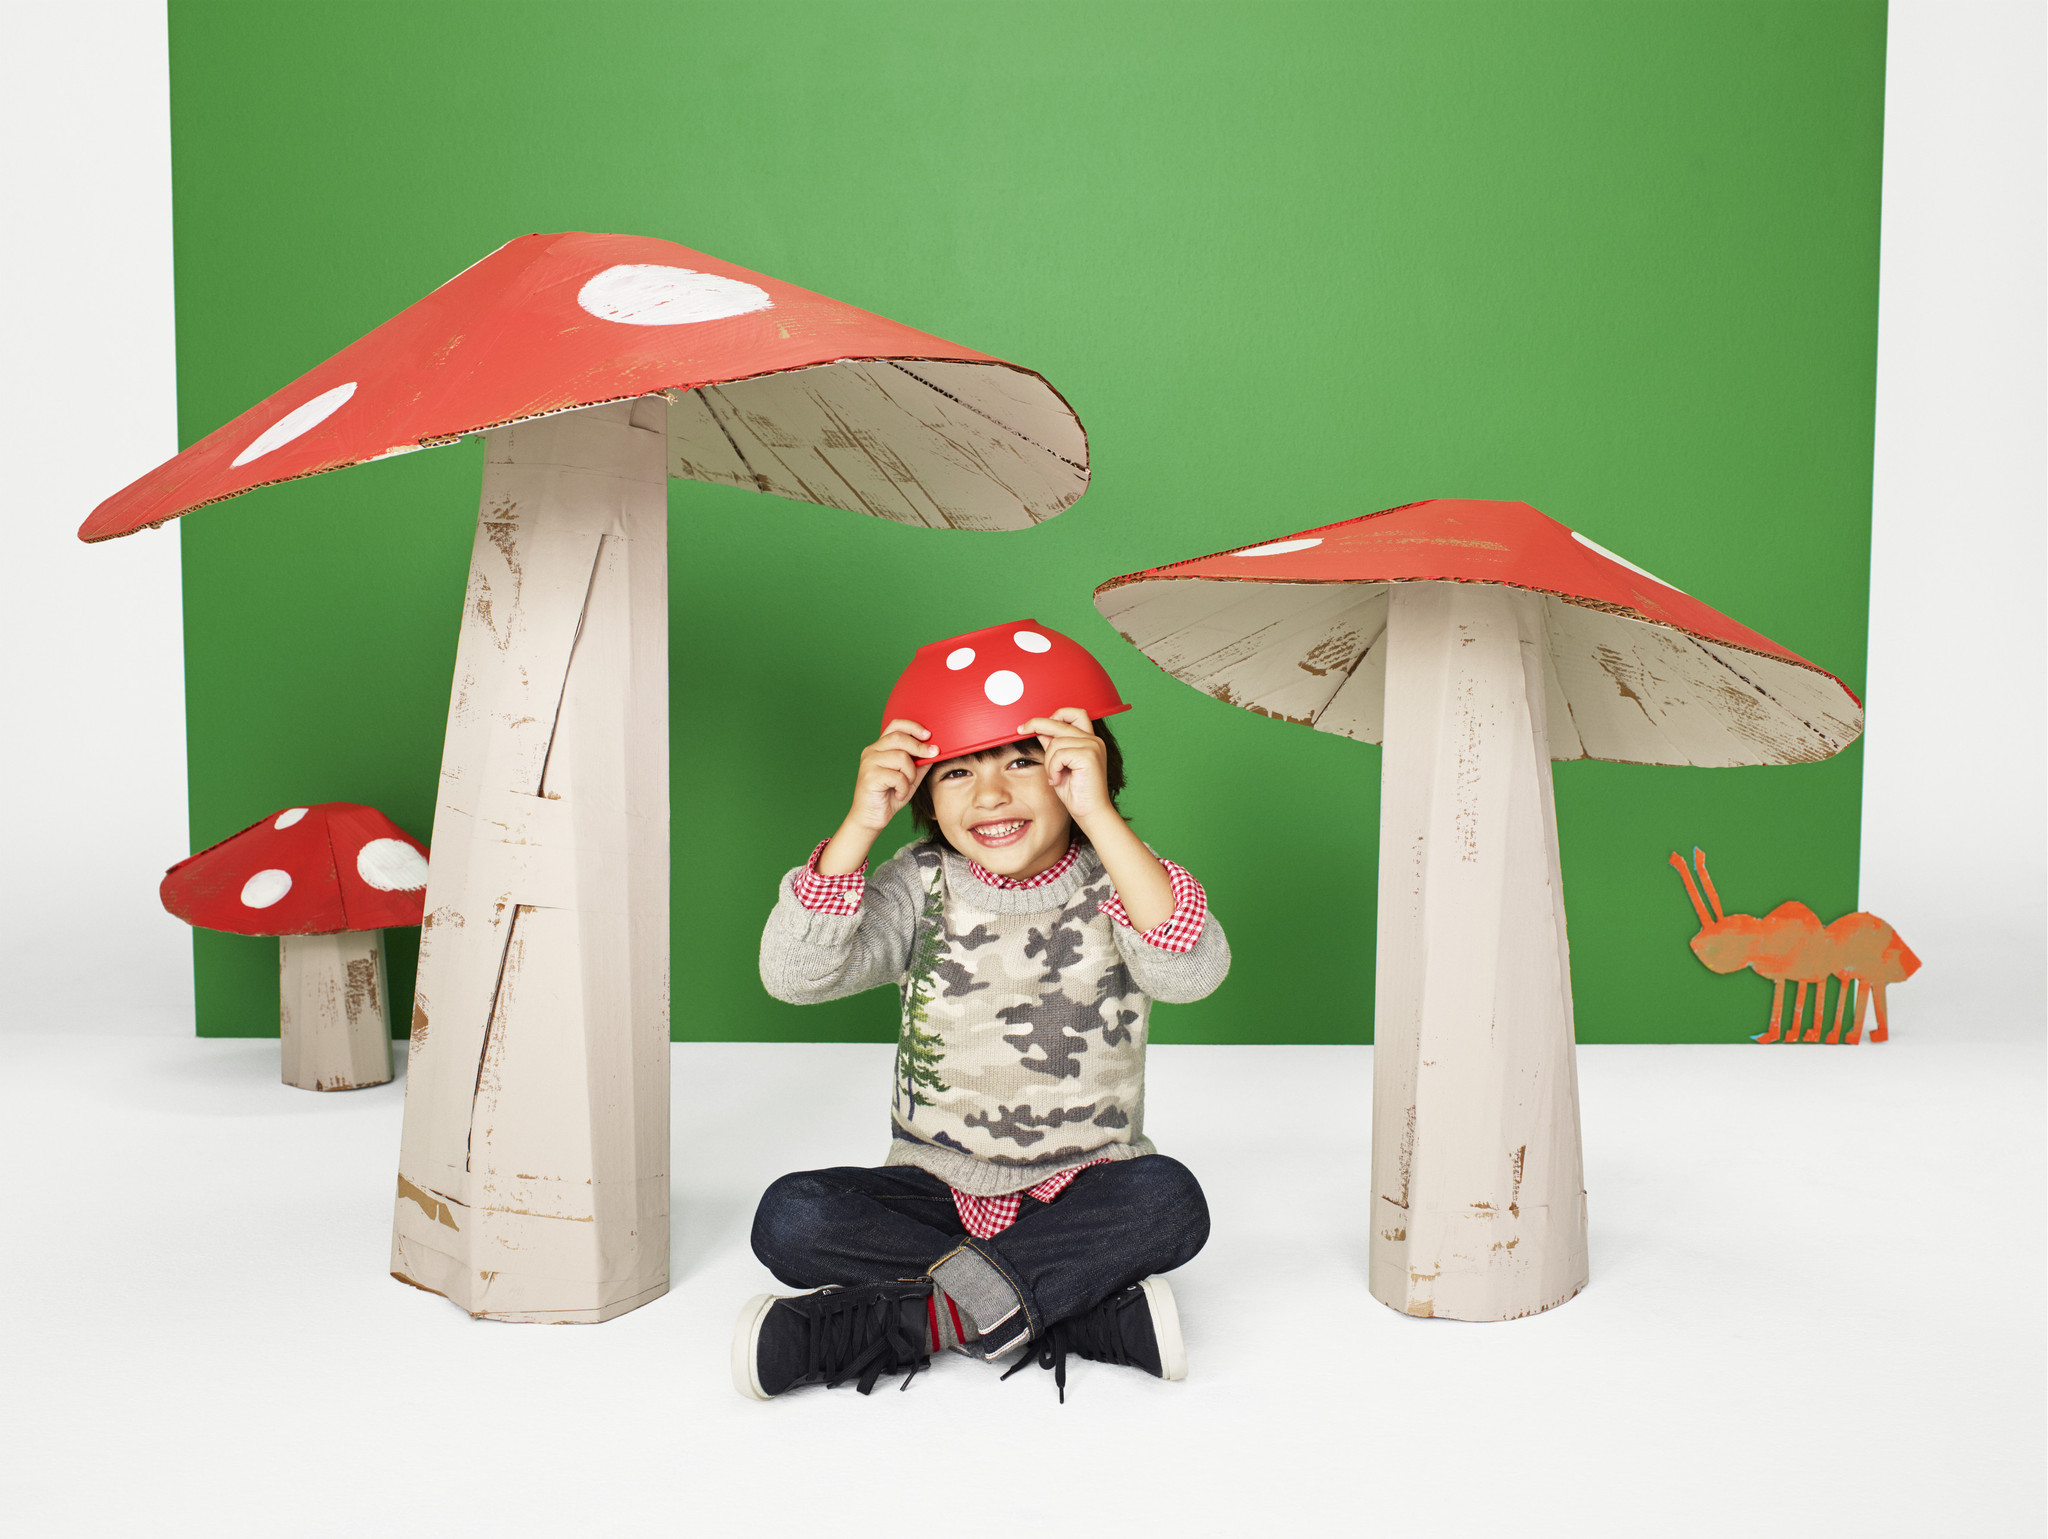 Kate and Jack Spade collaborate on Gap Kids collection